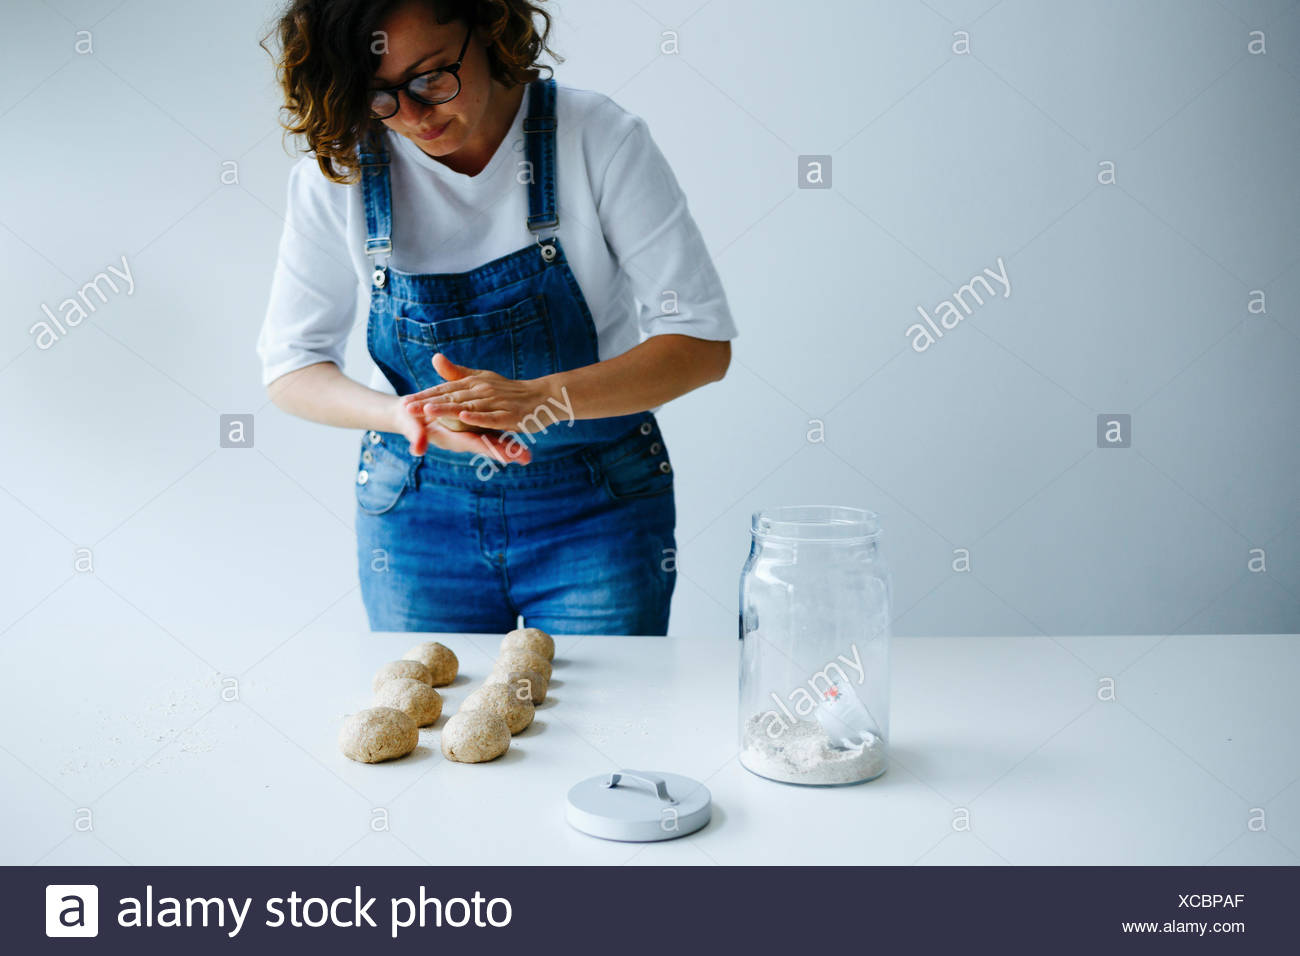 Girl forming dough for bagels on a white table - Stock Image